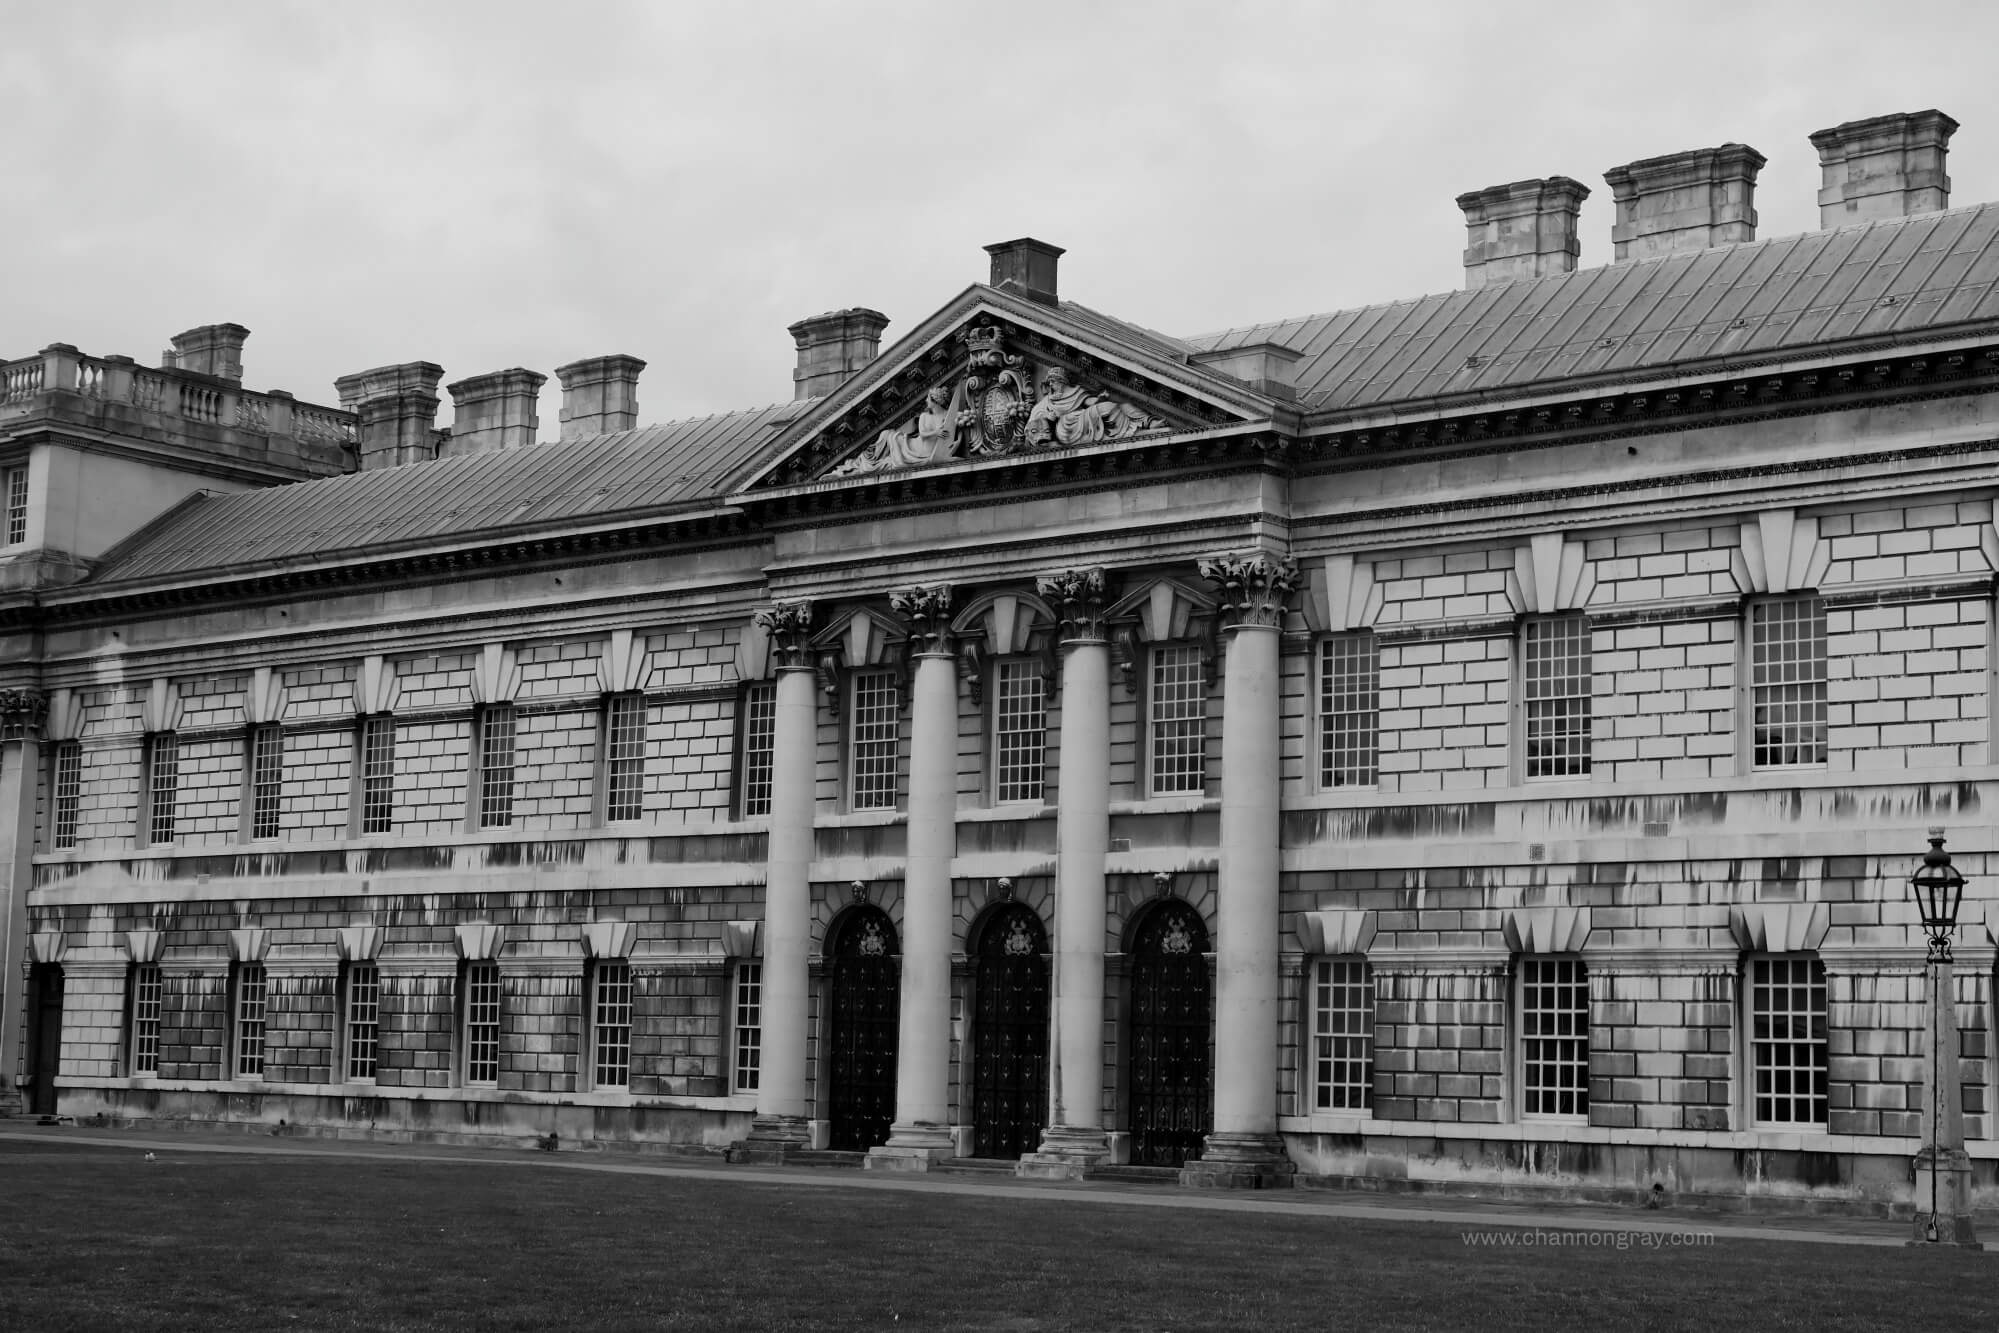 Greenwich Royal Naval College